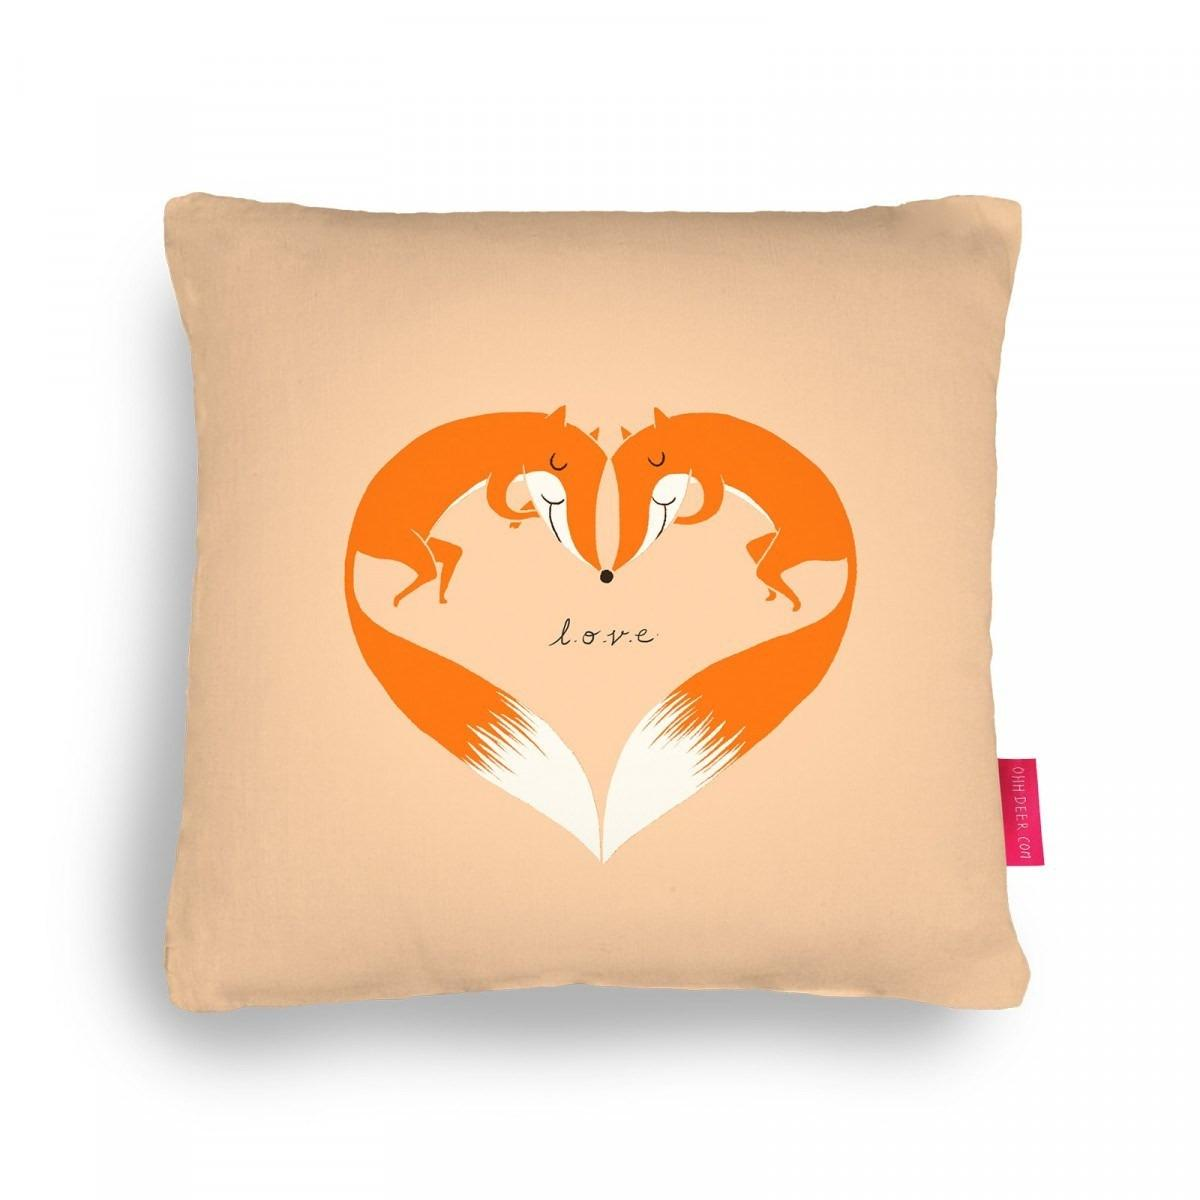 All We Need is Love Cushion